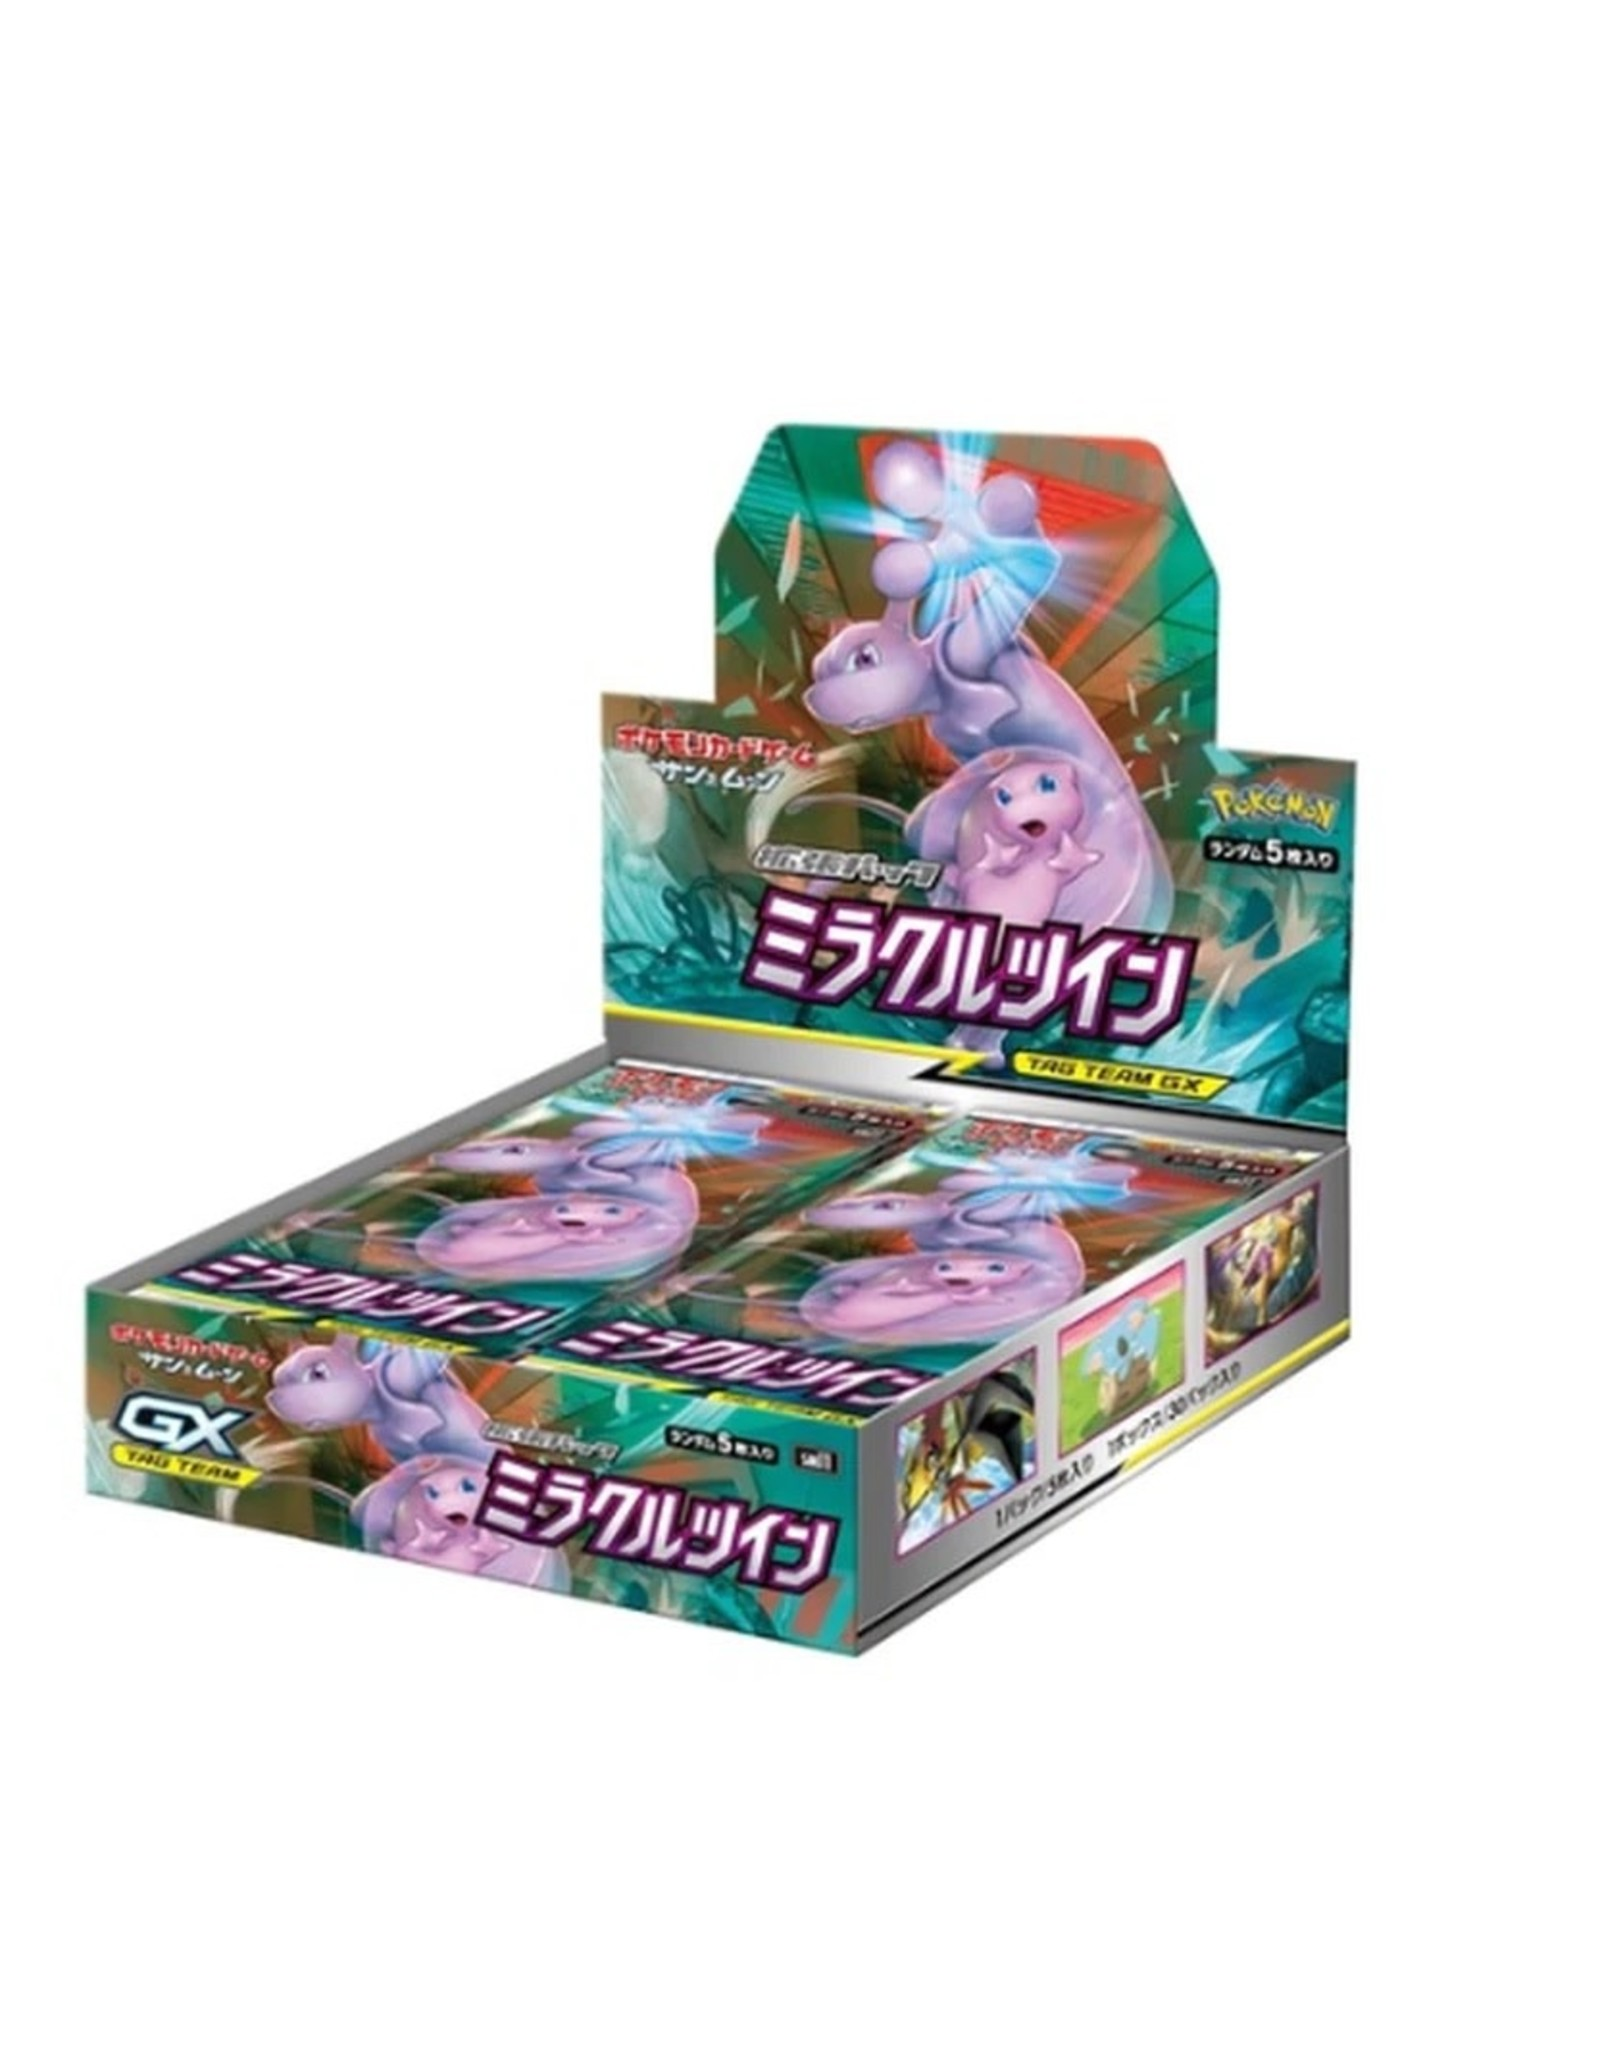 Pokémon Sun & Moon: Miracle Twin Booster Pack - Japanese edition (5 cards)